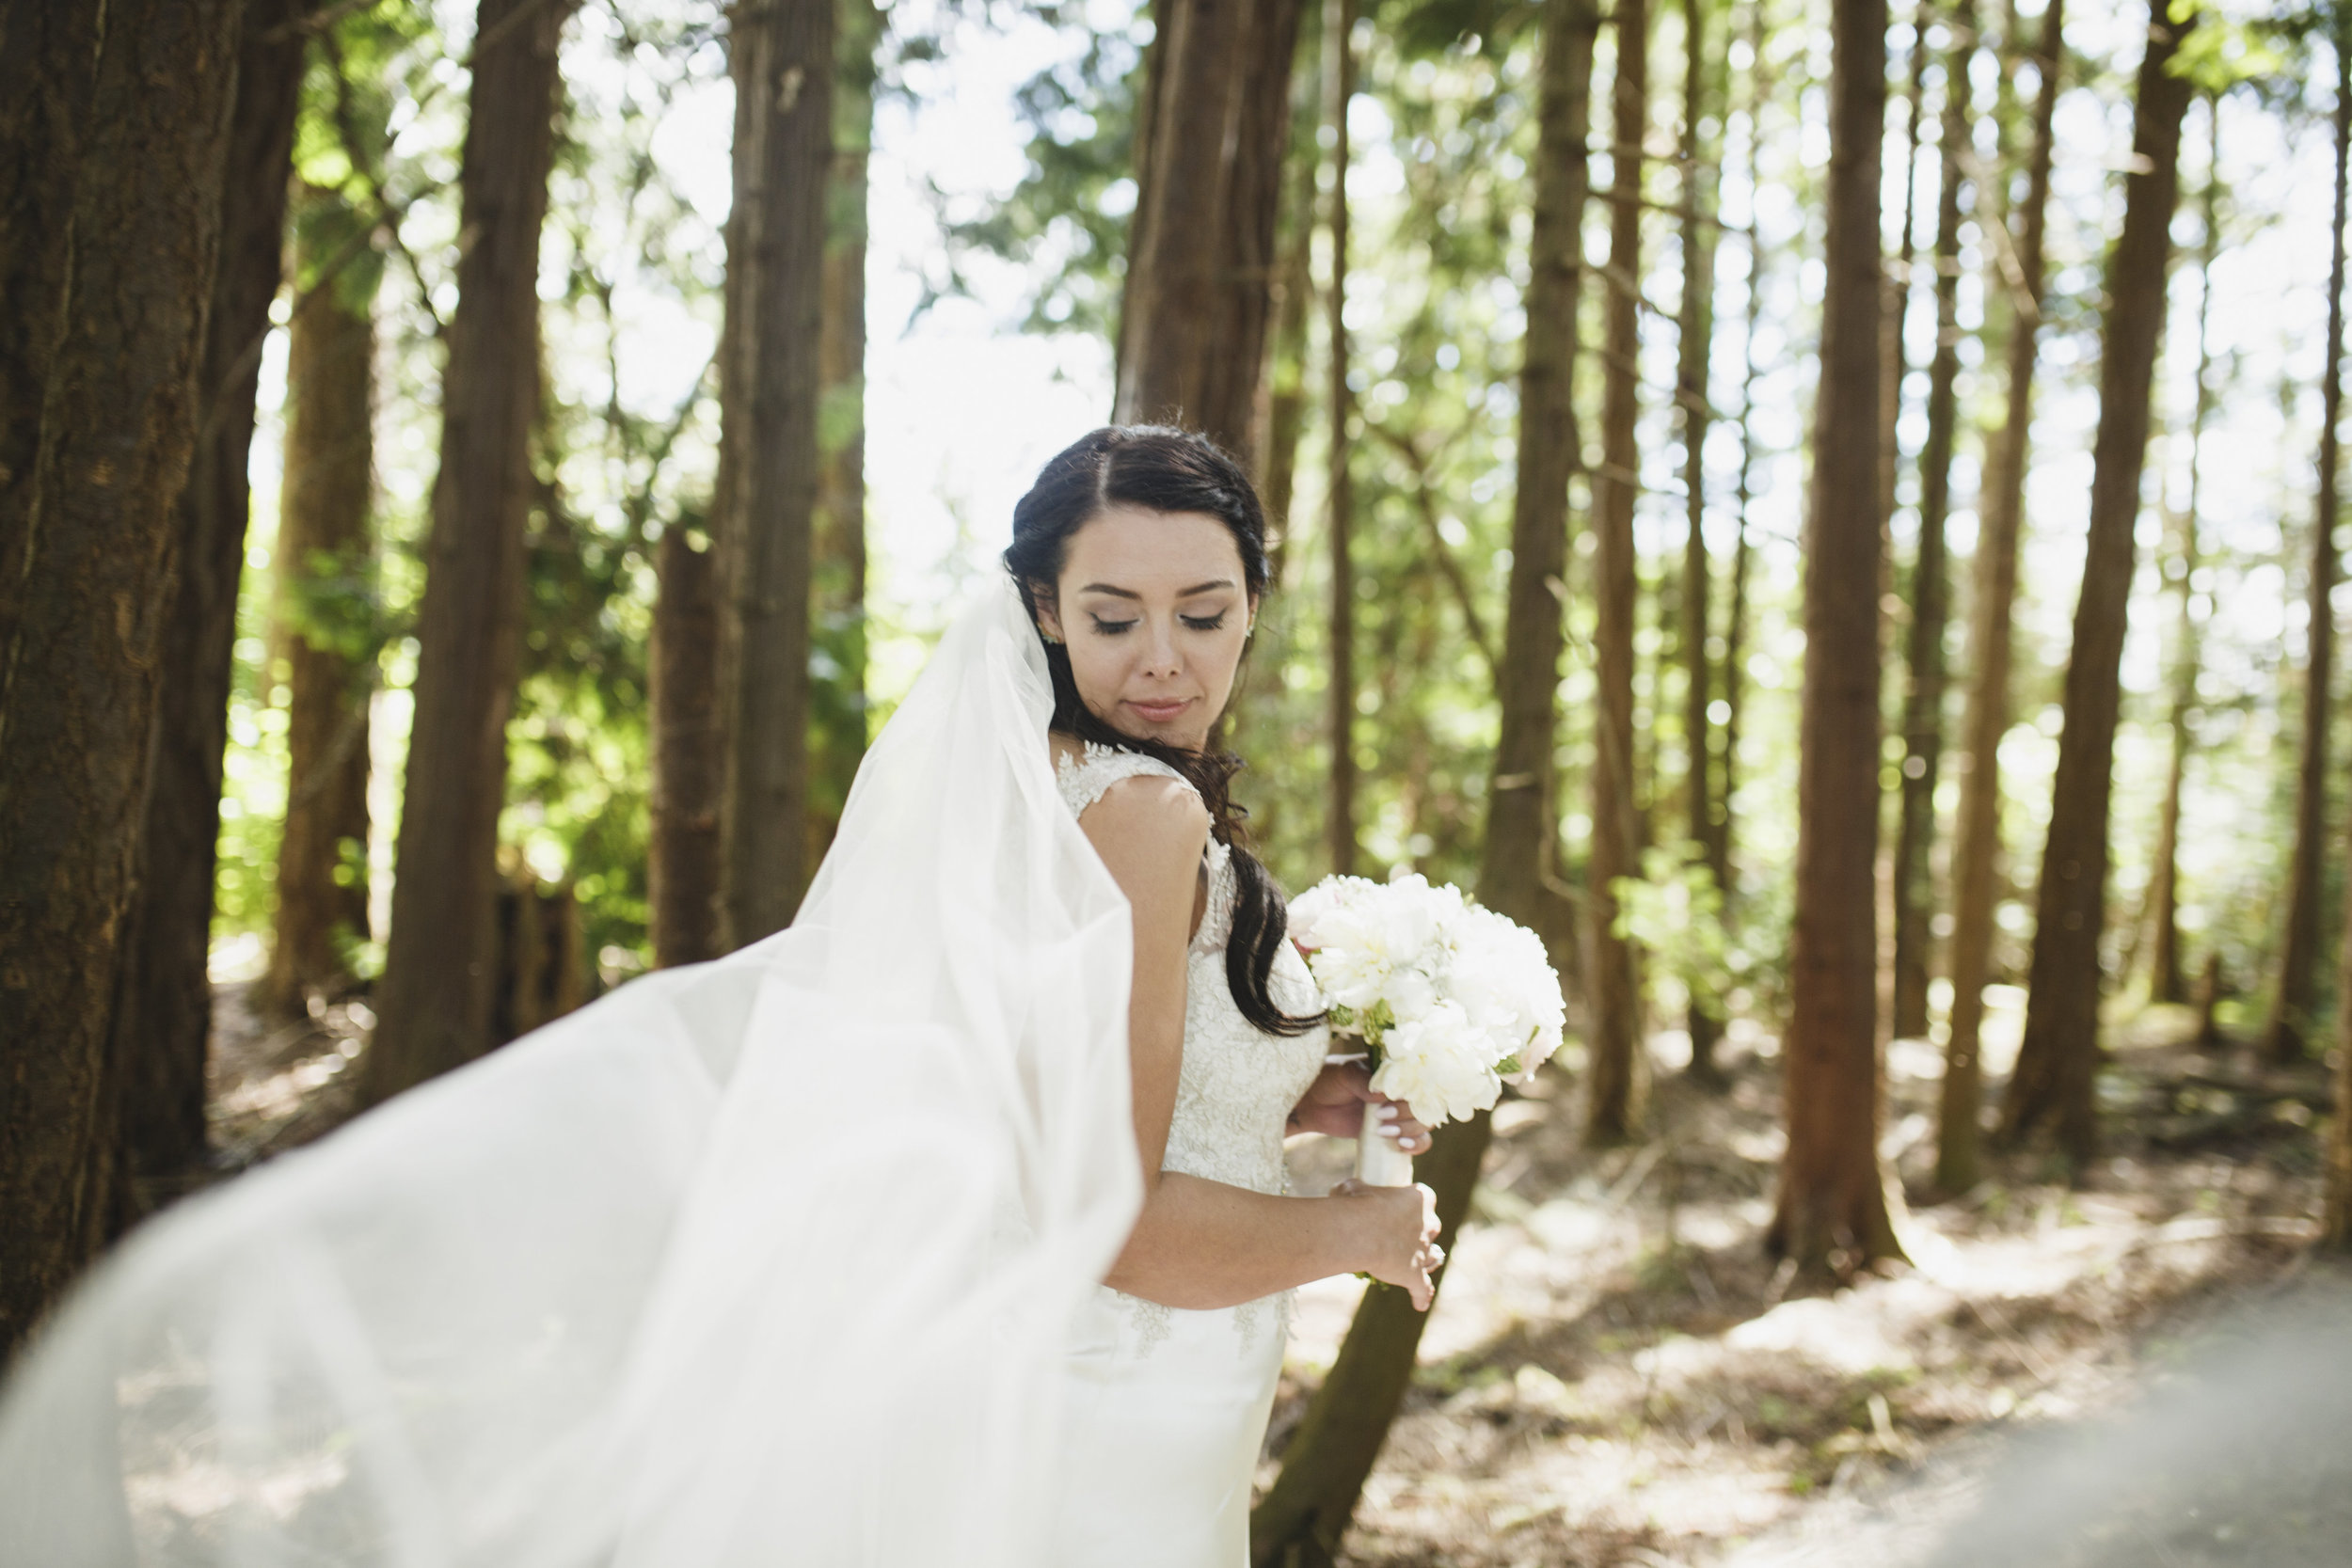 The bride holding her bouquet of flowers Forest wedding Tofino Sea CIder Vancouver Island